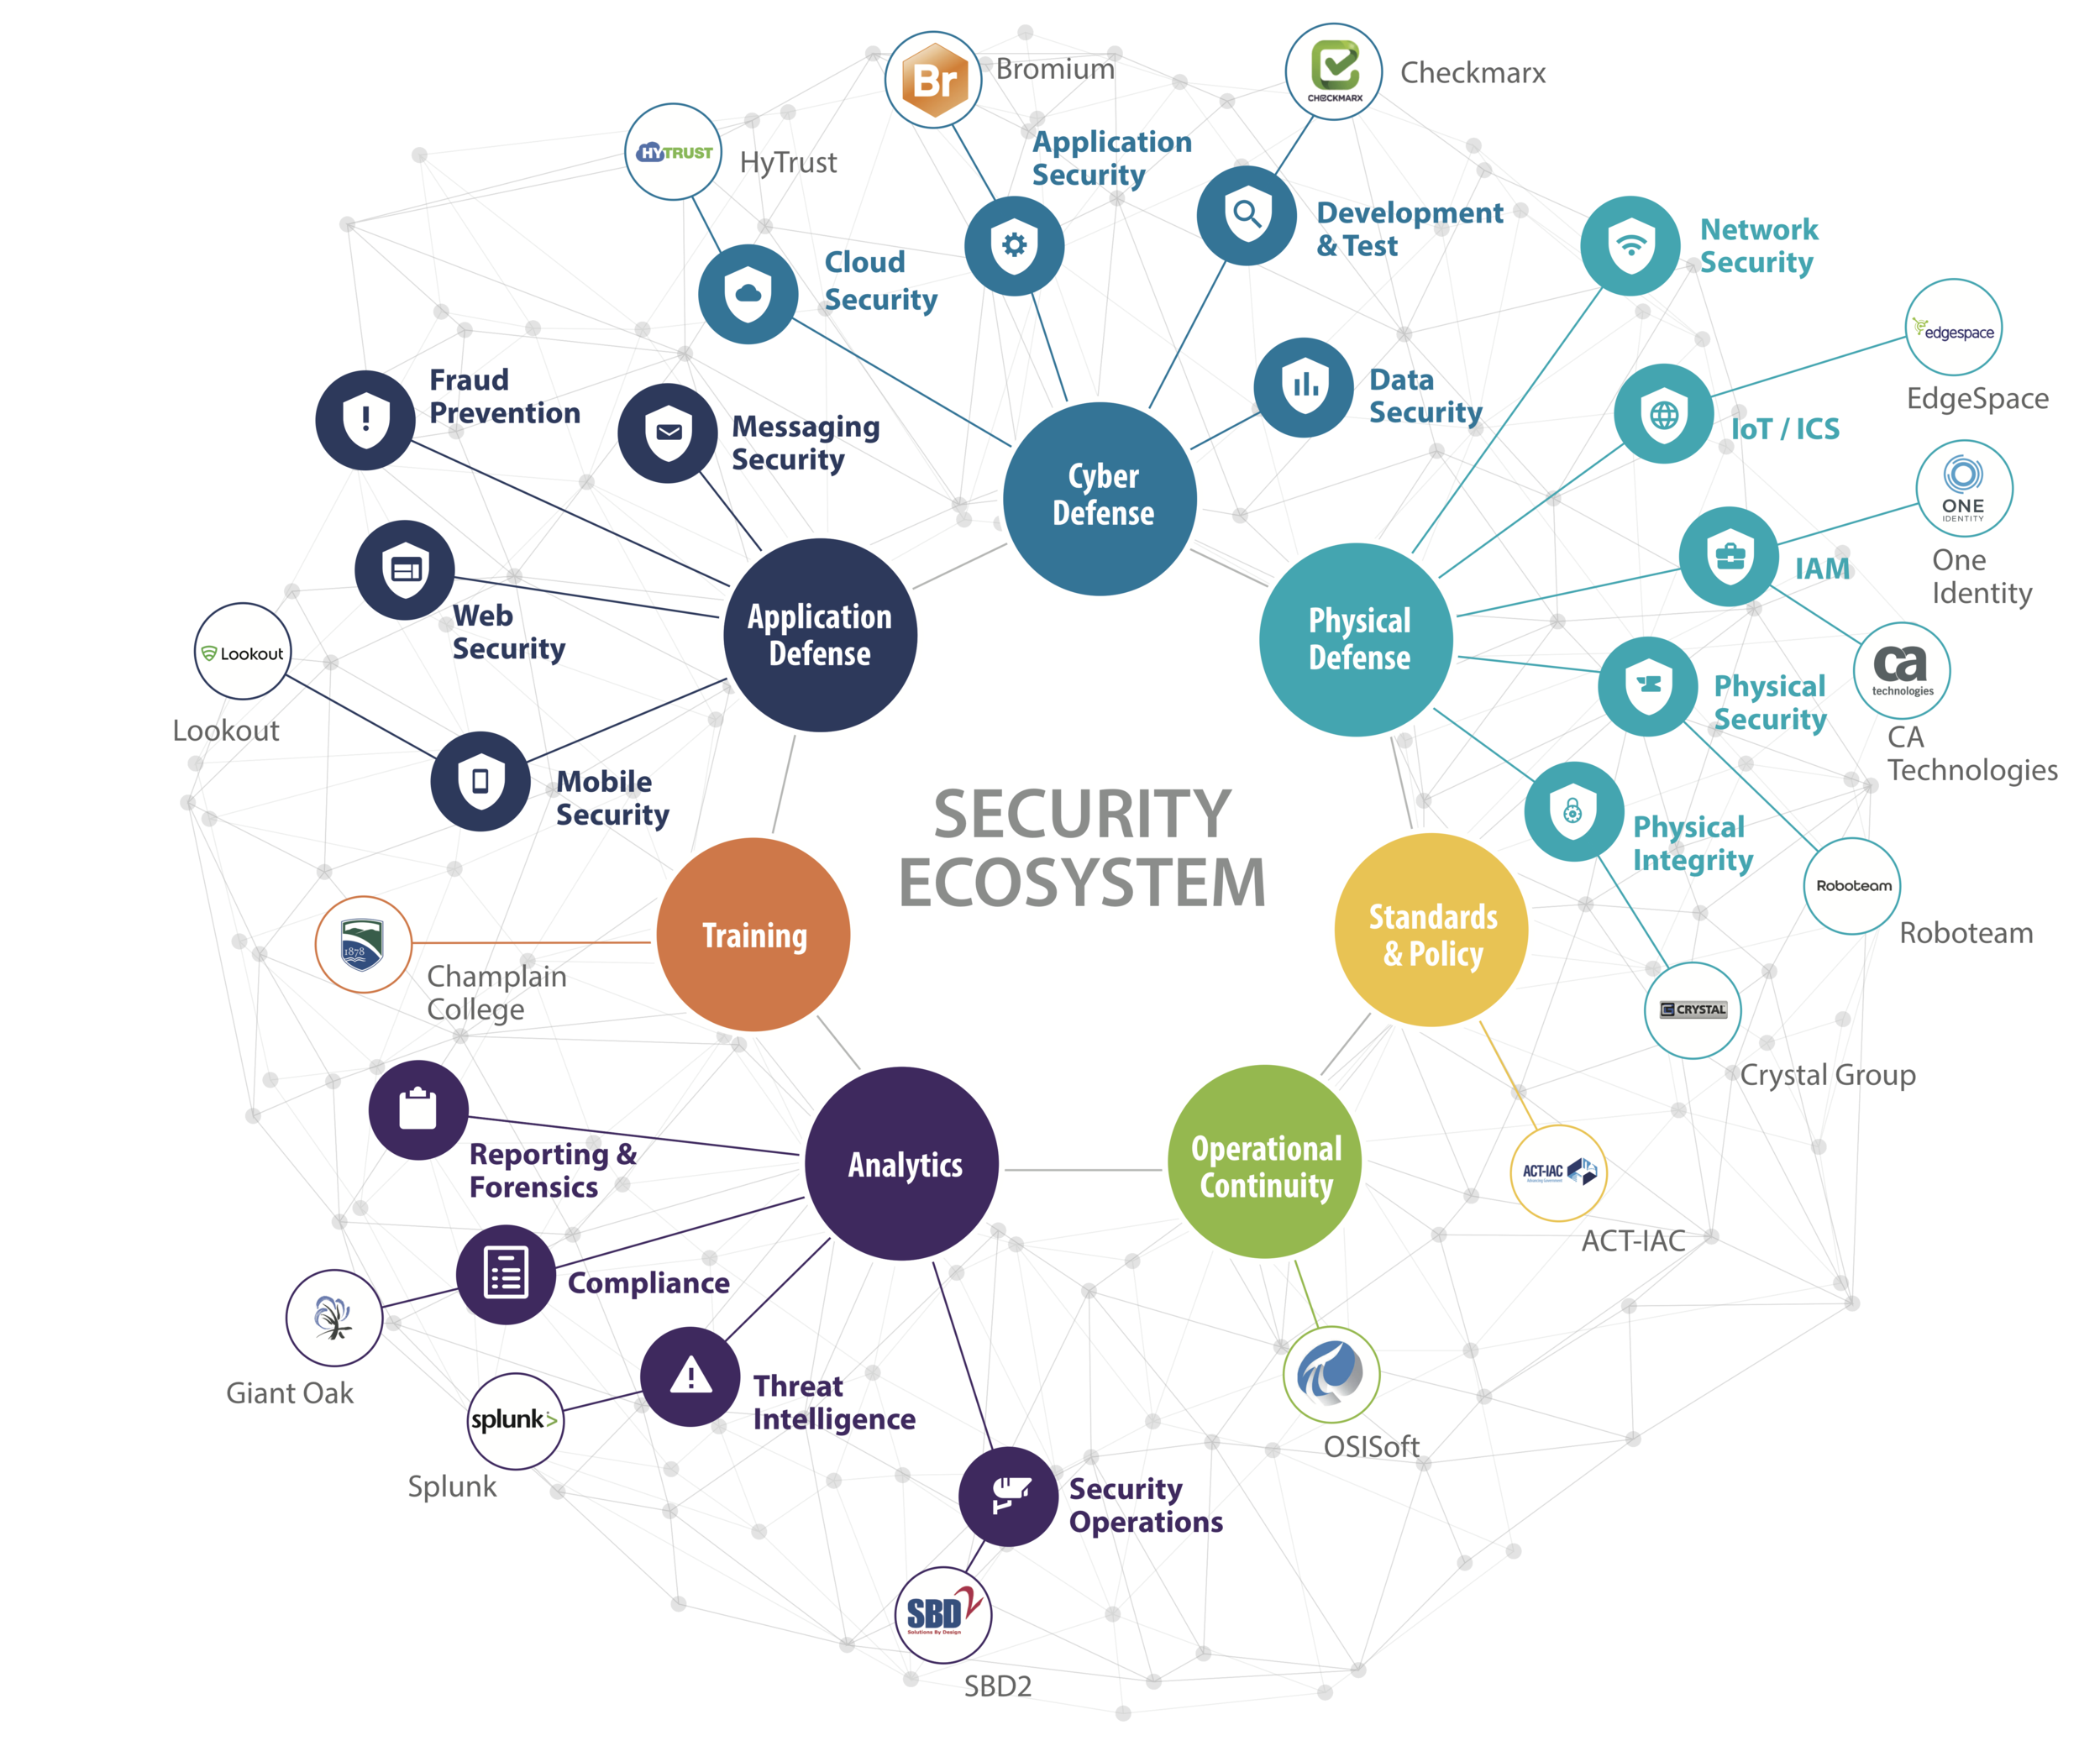 Ecosystem - Security 2019-03-19.png